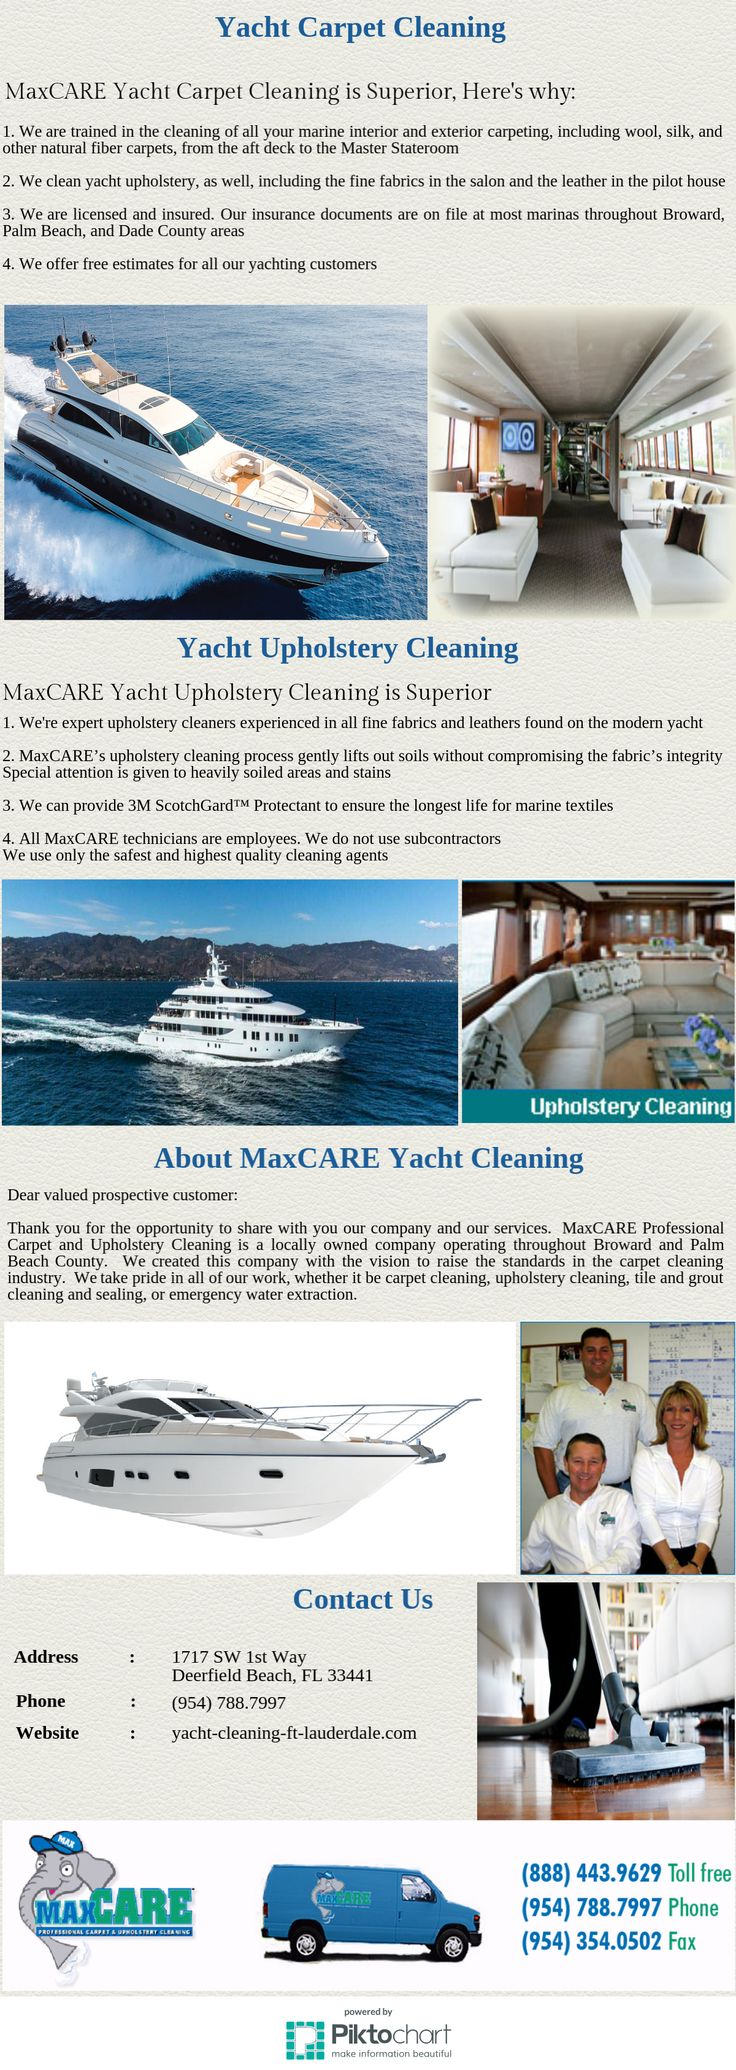 Thank you for the opportunity to share with you our company and our services maxcare emergency watergrout cleaningupholstery